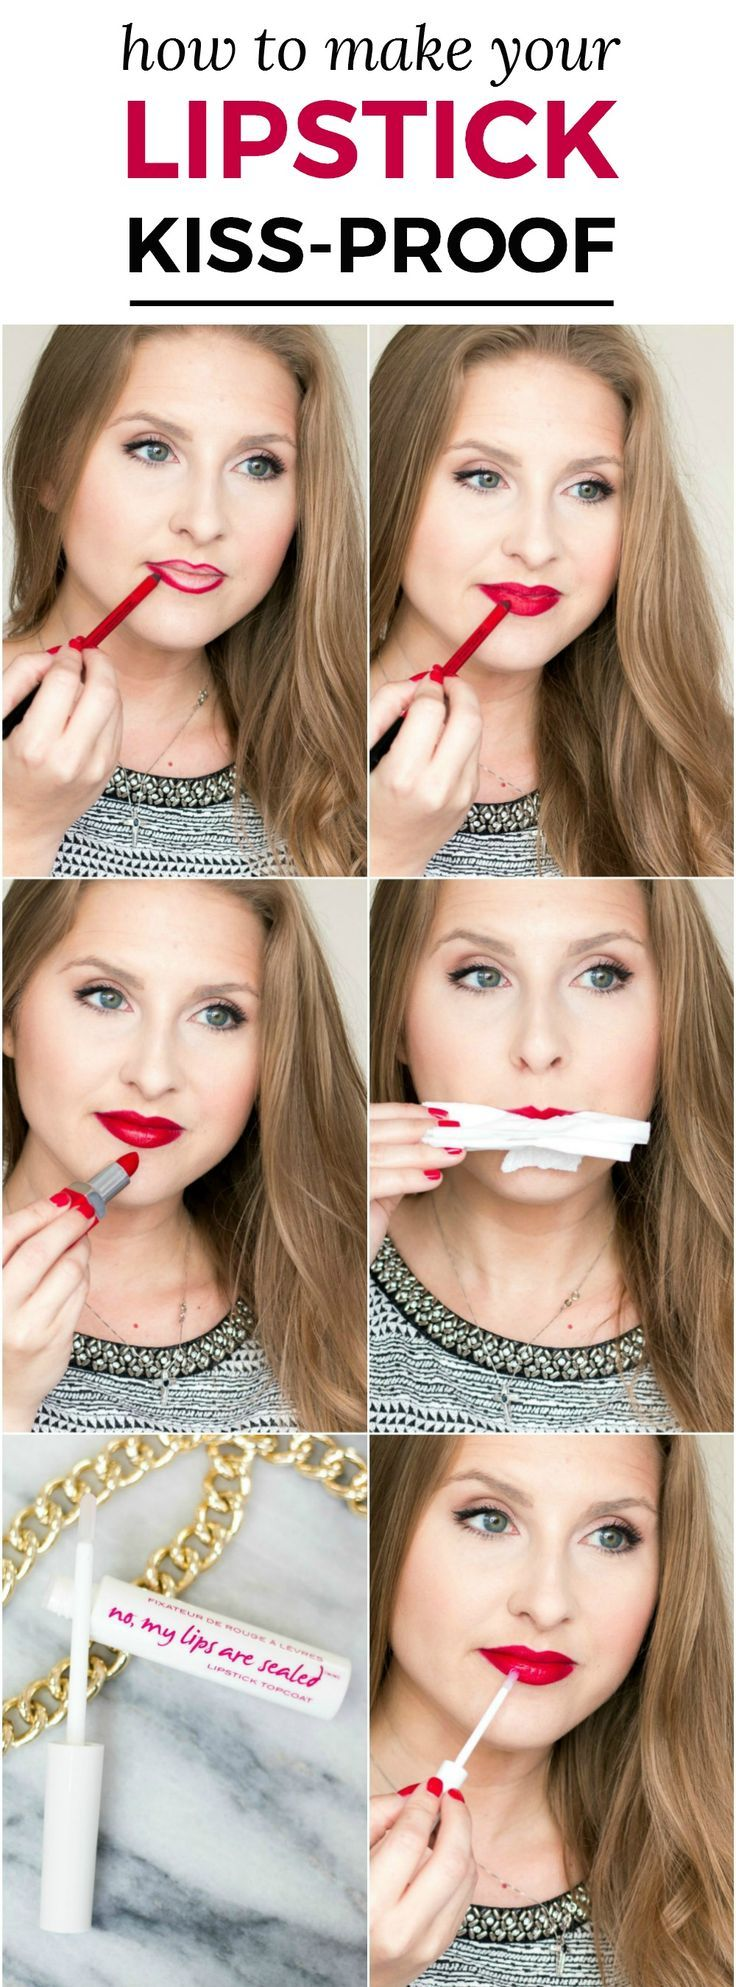 Kiss-Proof Lips Tutorial: Learn how to make your lipstick last longer and become smudge-proof and kiss-proof with one amazing product from @knowcosmetics  in this easy makeup tutorial from Florida beauty blogger Ashley Brooke Nicholas! #itworksbeautifully sponsored